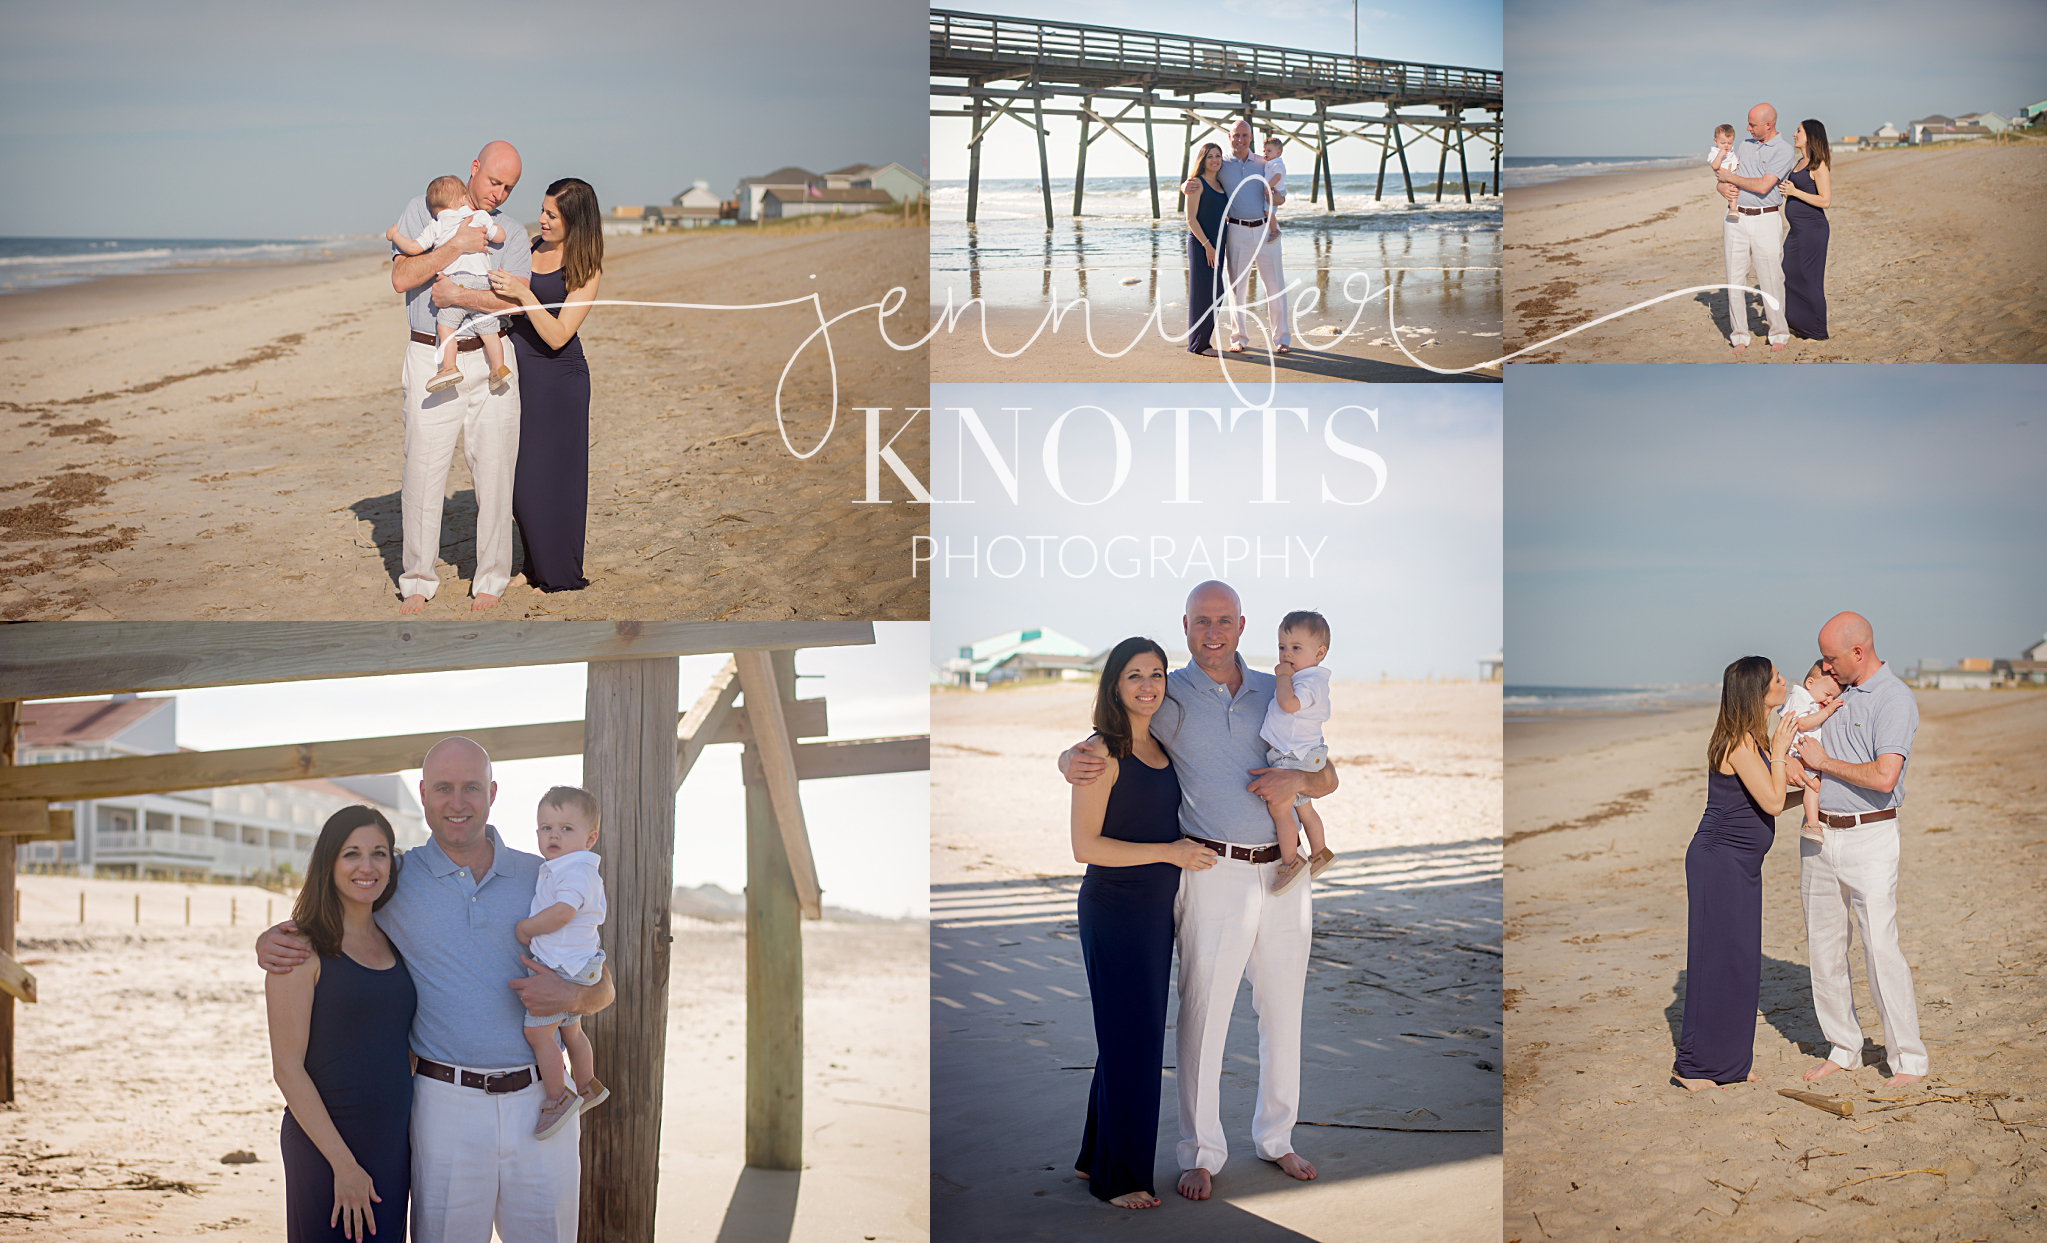 oak island nc photographer